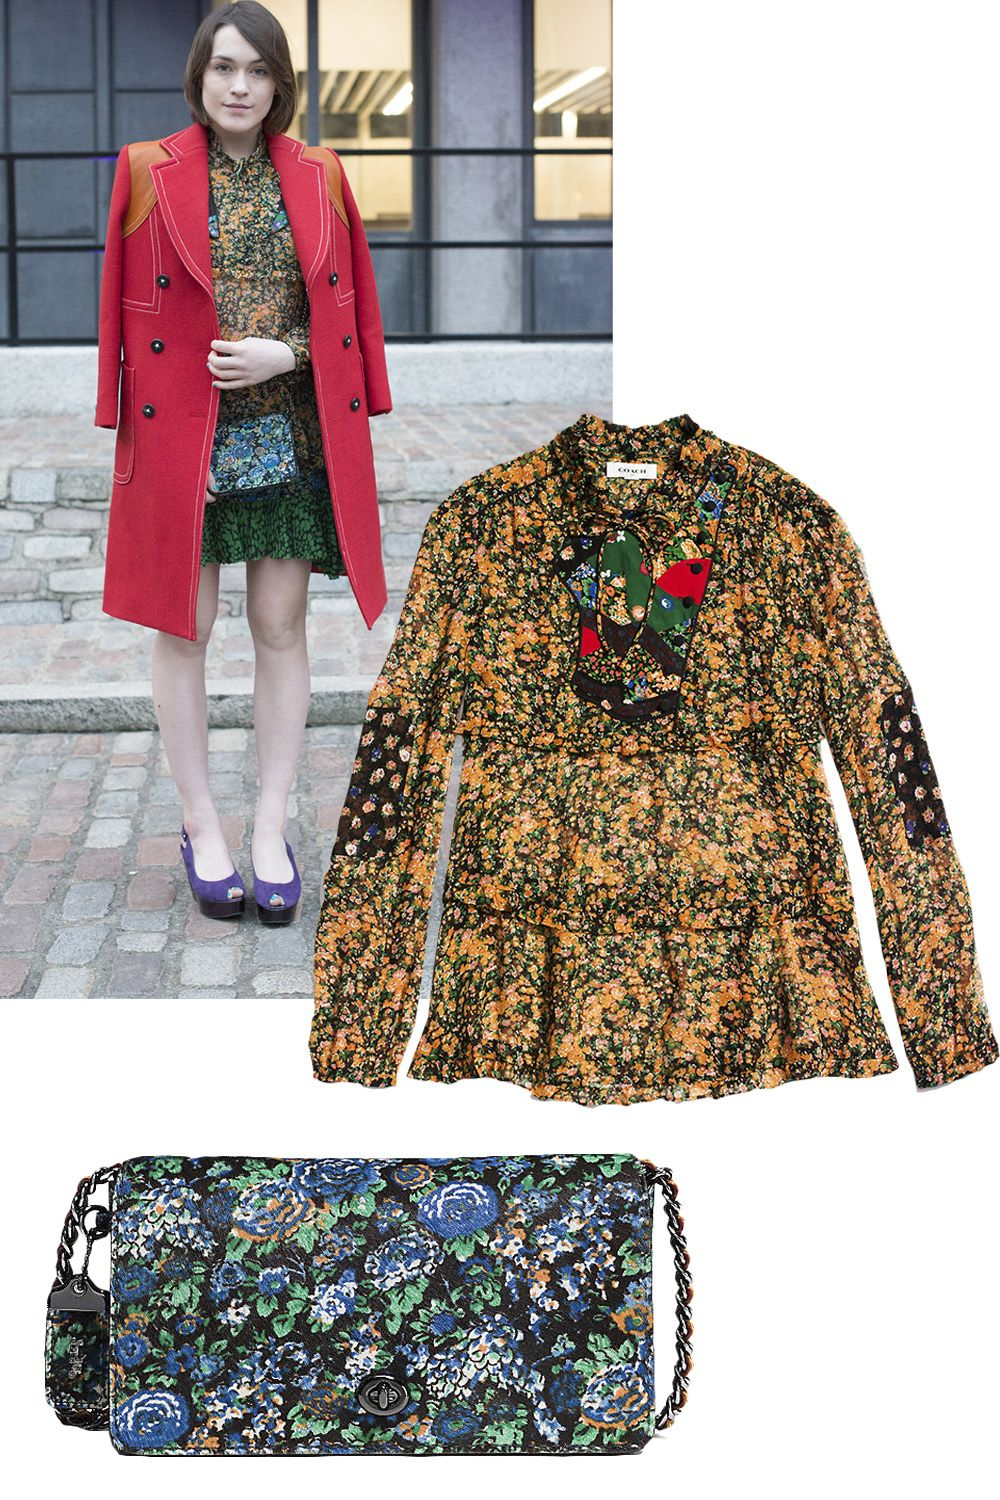 """<p><strong>Who: </strong>Ella Catliff</p><p><strong>Style Lesson: </strong>Juxtapose bright buds, like a floral blouse with a contrasting floral purse.<br></p><p><em>Coach <em>1941</em> Side Opening Blouse With Applique, $450, <a rel=""""noskim"""" href=""""http://www.coach.com/coach-designer-tops-side-opening-blouse-with-applique/86681.html?dwvar_color=YEO&CID=D_B_HBZ_10370"""" target=""""_blank"""">coach.com</a>&#x3B; Coach <em>1941</em> Dinky Crossbody in Printed Haircalf, $595, <a rel=""""noskim"""" href=""""http://www.coach.com/coach-designer-crossbody-dinky-crossbody-in-printed-haircalf/38209.html?dwvar_color=DKFG5&CID=D_B_HBZ_10340"""" target=""""_blank"""">coach.com</a></em></p>"""